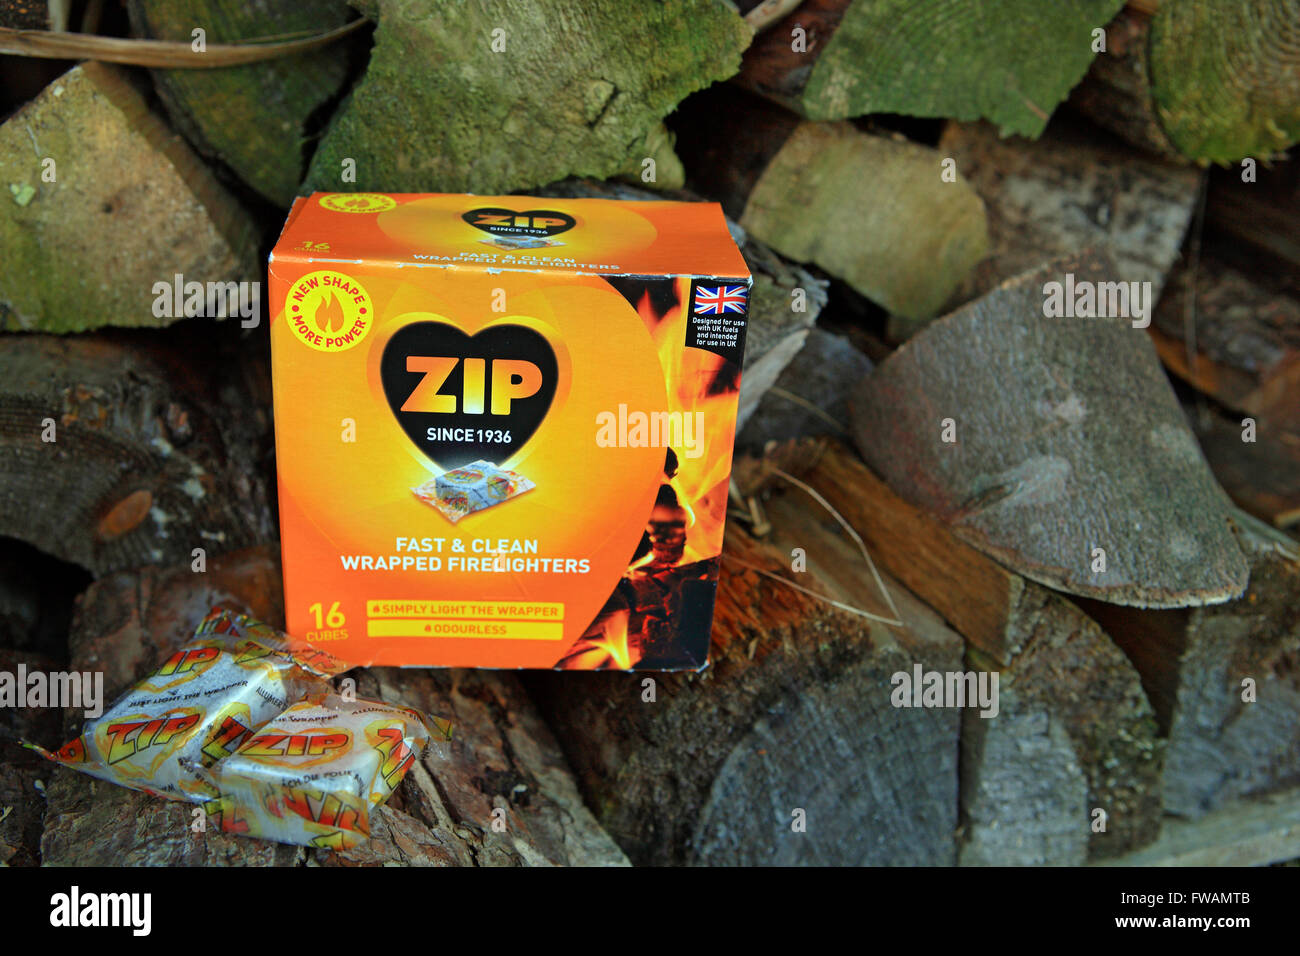 Zip firelighters sitting on file of cut fire wood - Stock Image